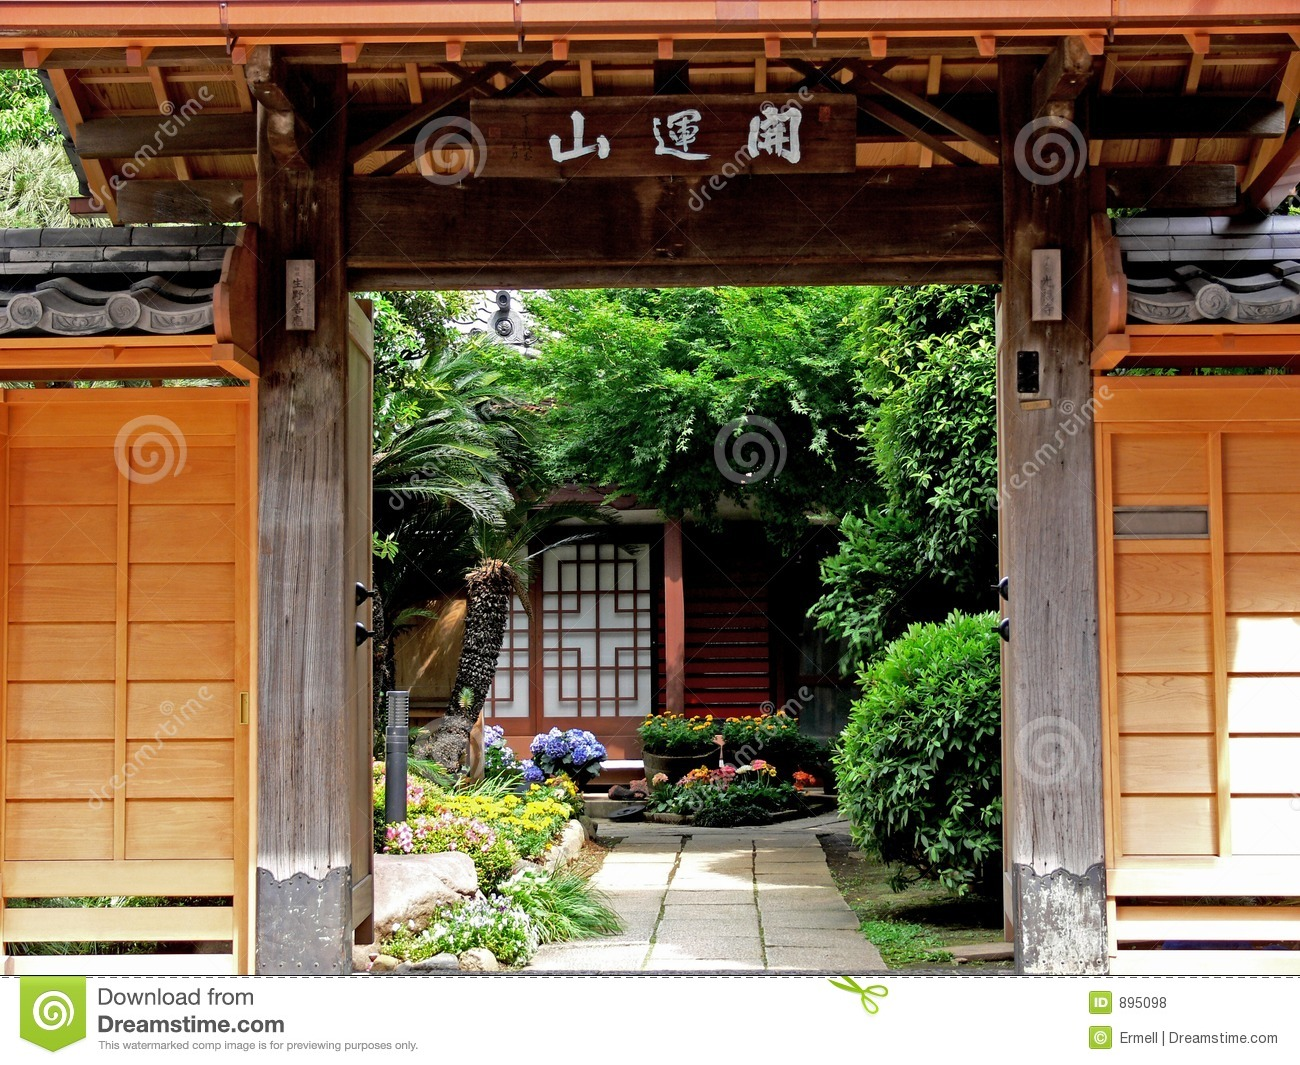 Japanese entrance royalty free stock photos image 895098 for Japanese garden entrance